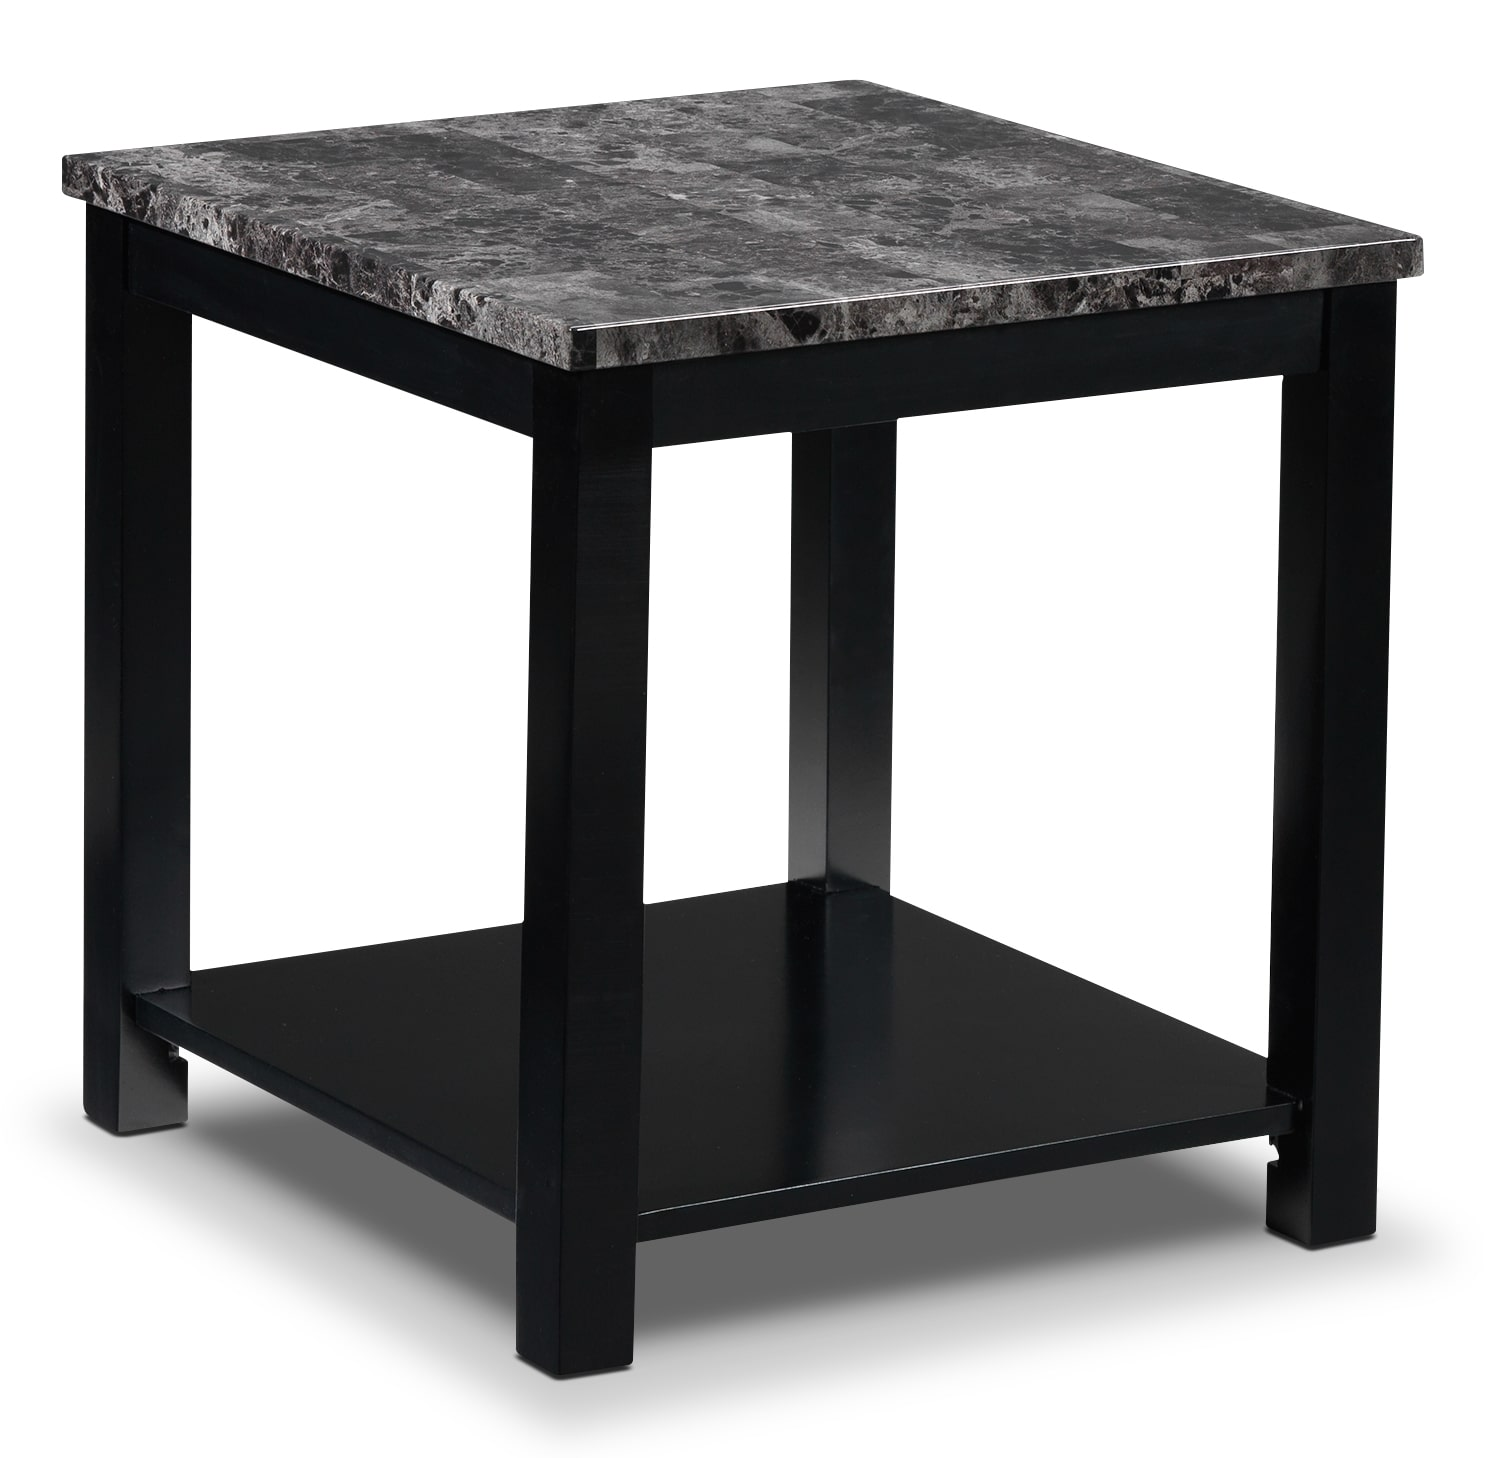 Selena End Table - Black